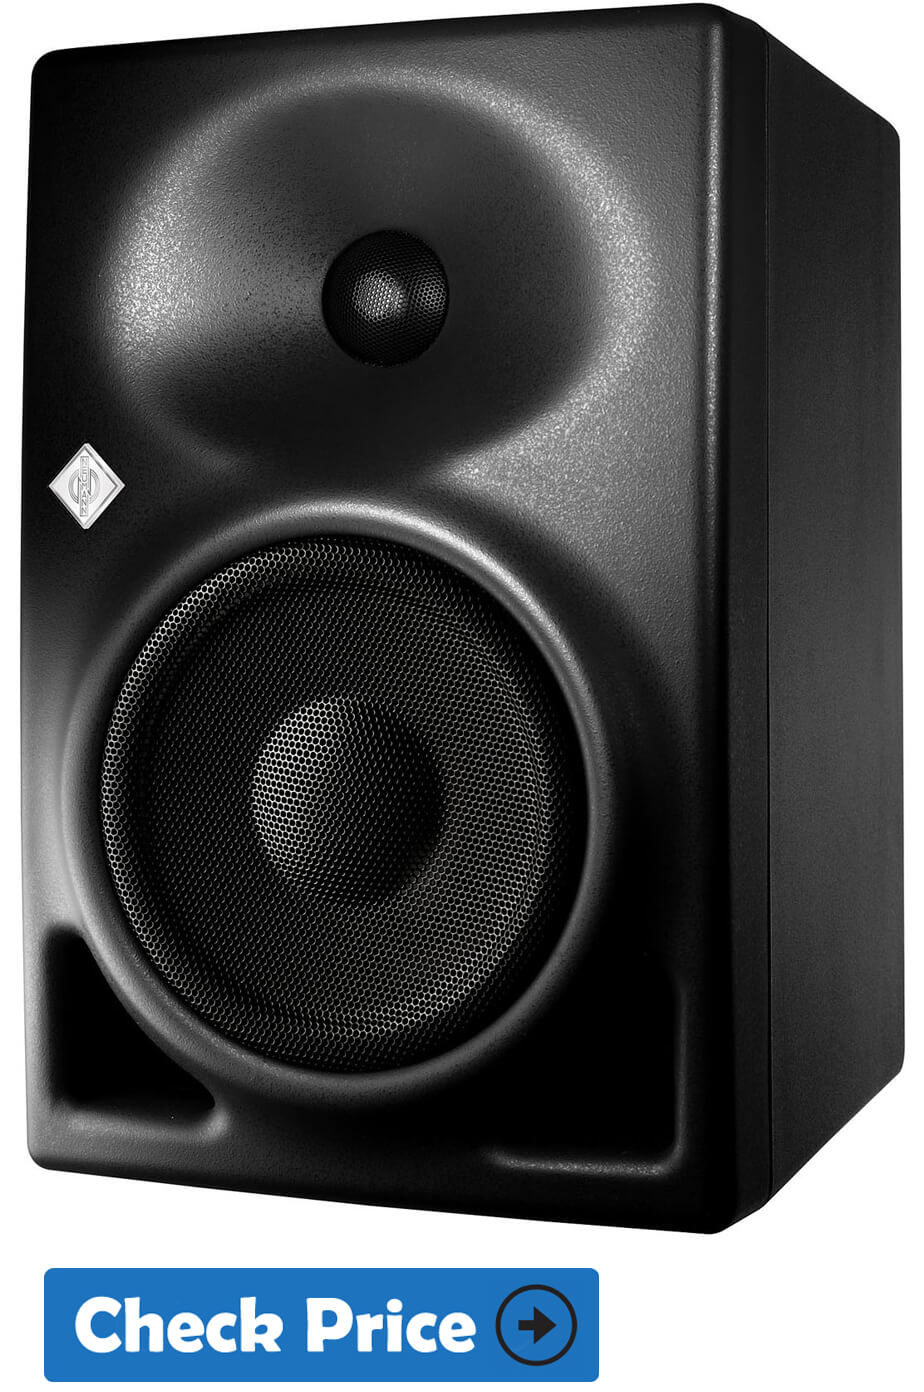 best studio Monitor under 1000 dollars